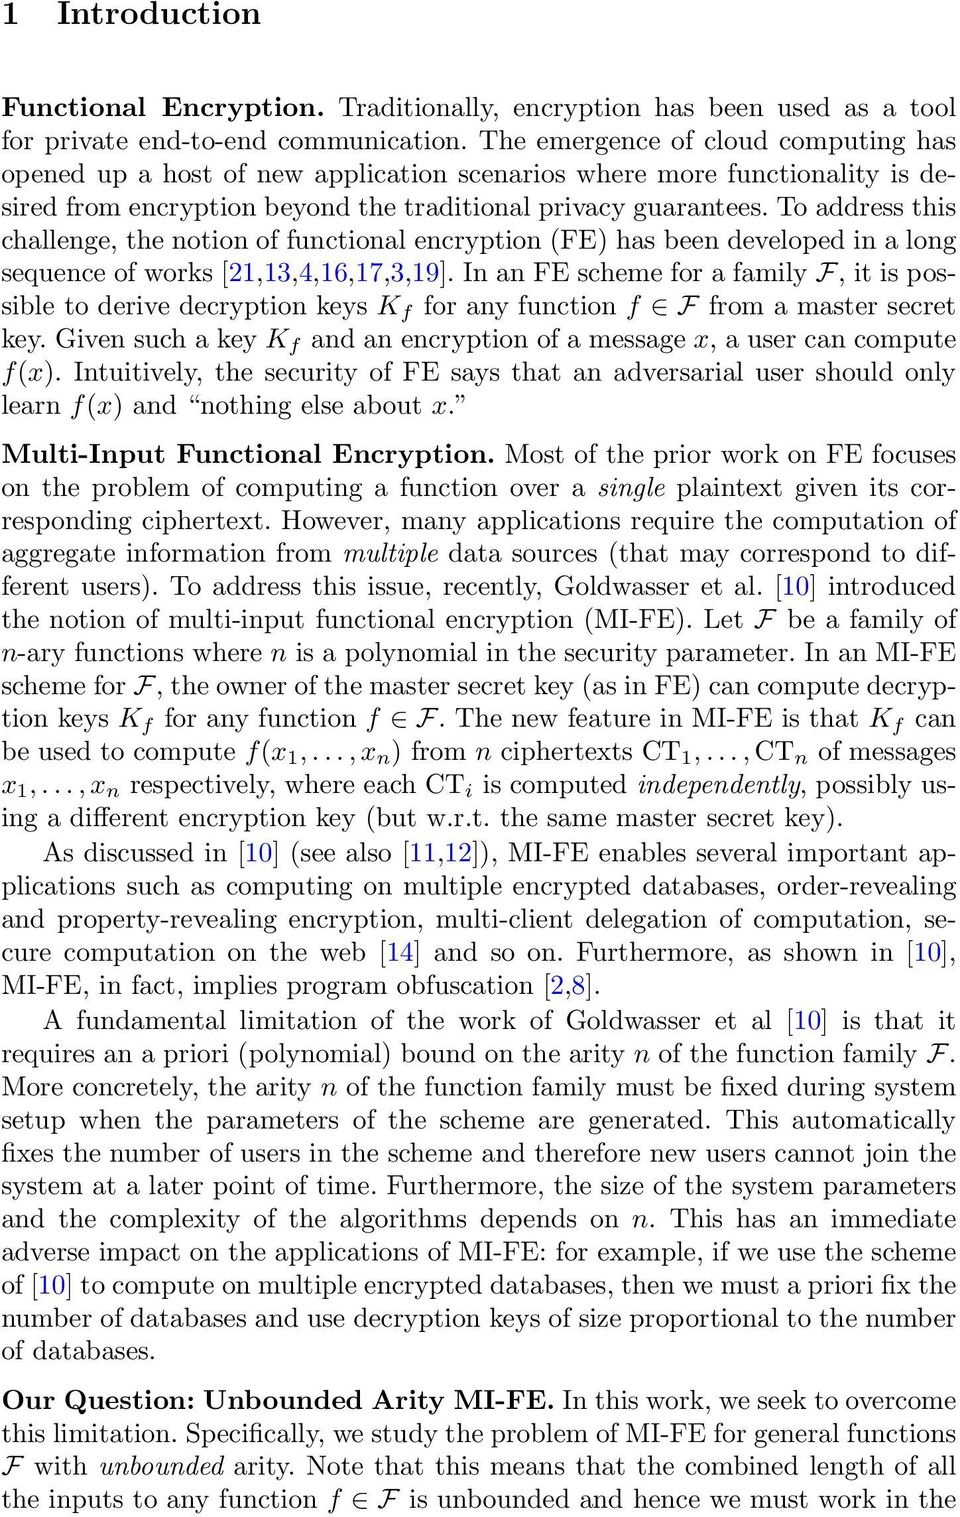 To address this challenge, the notion of functional encryption (FE) has been developed in a long sequence of works [21,13,4,16,17,3,19].